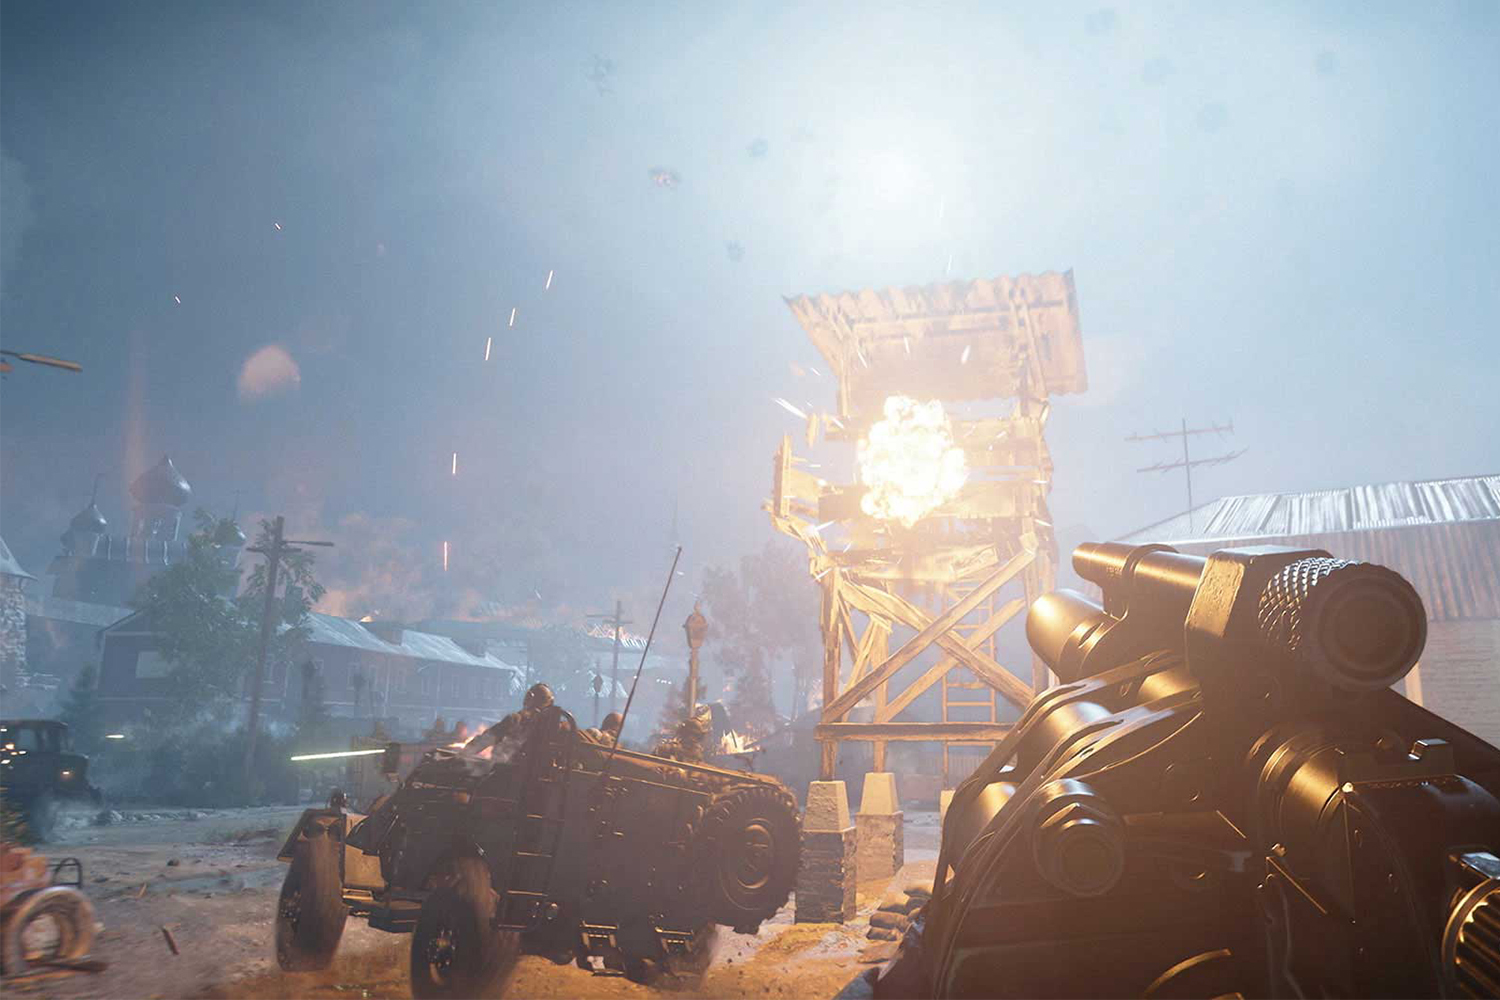 You can play in 4K with ray tracing turned on if you've got a sufficiently beefy PC